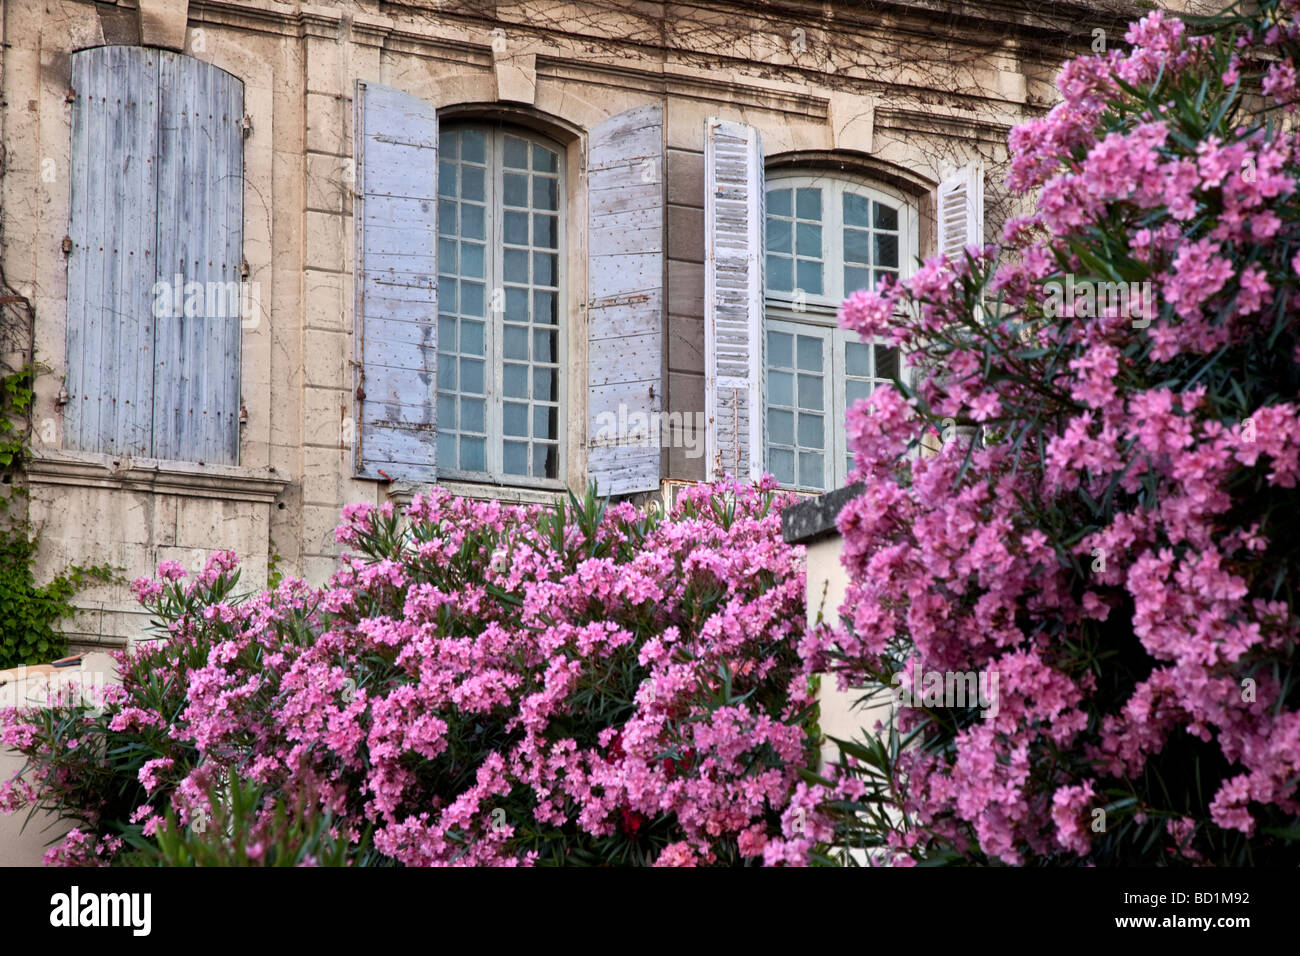 Purply pink flowers in front of blue shuttered windows in St. Remy de-Provence France - Stock Image